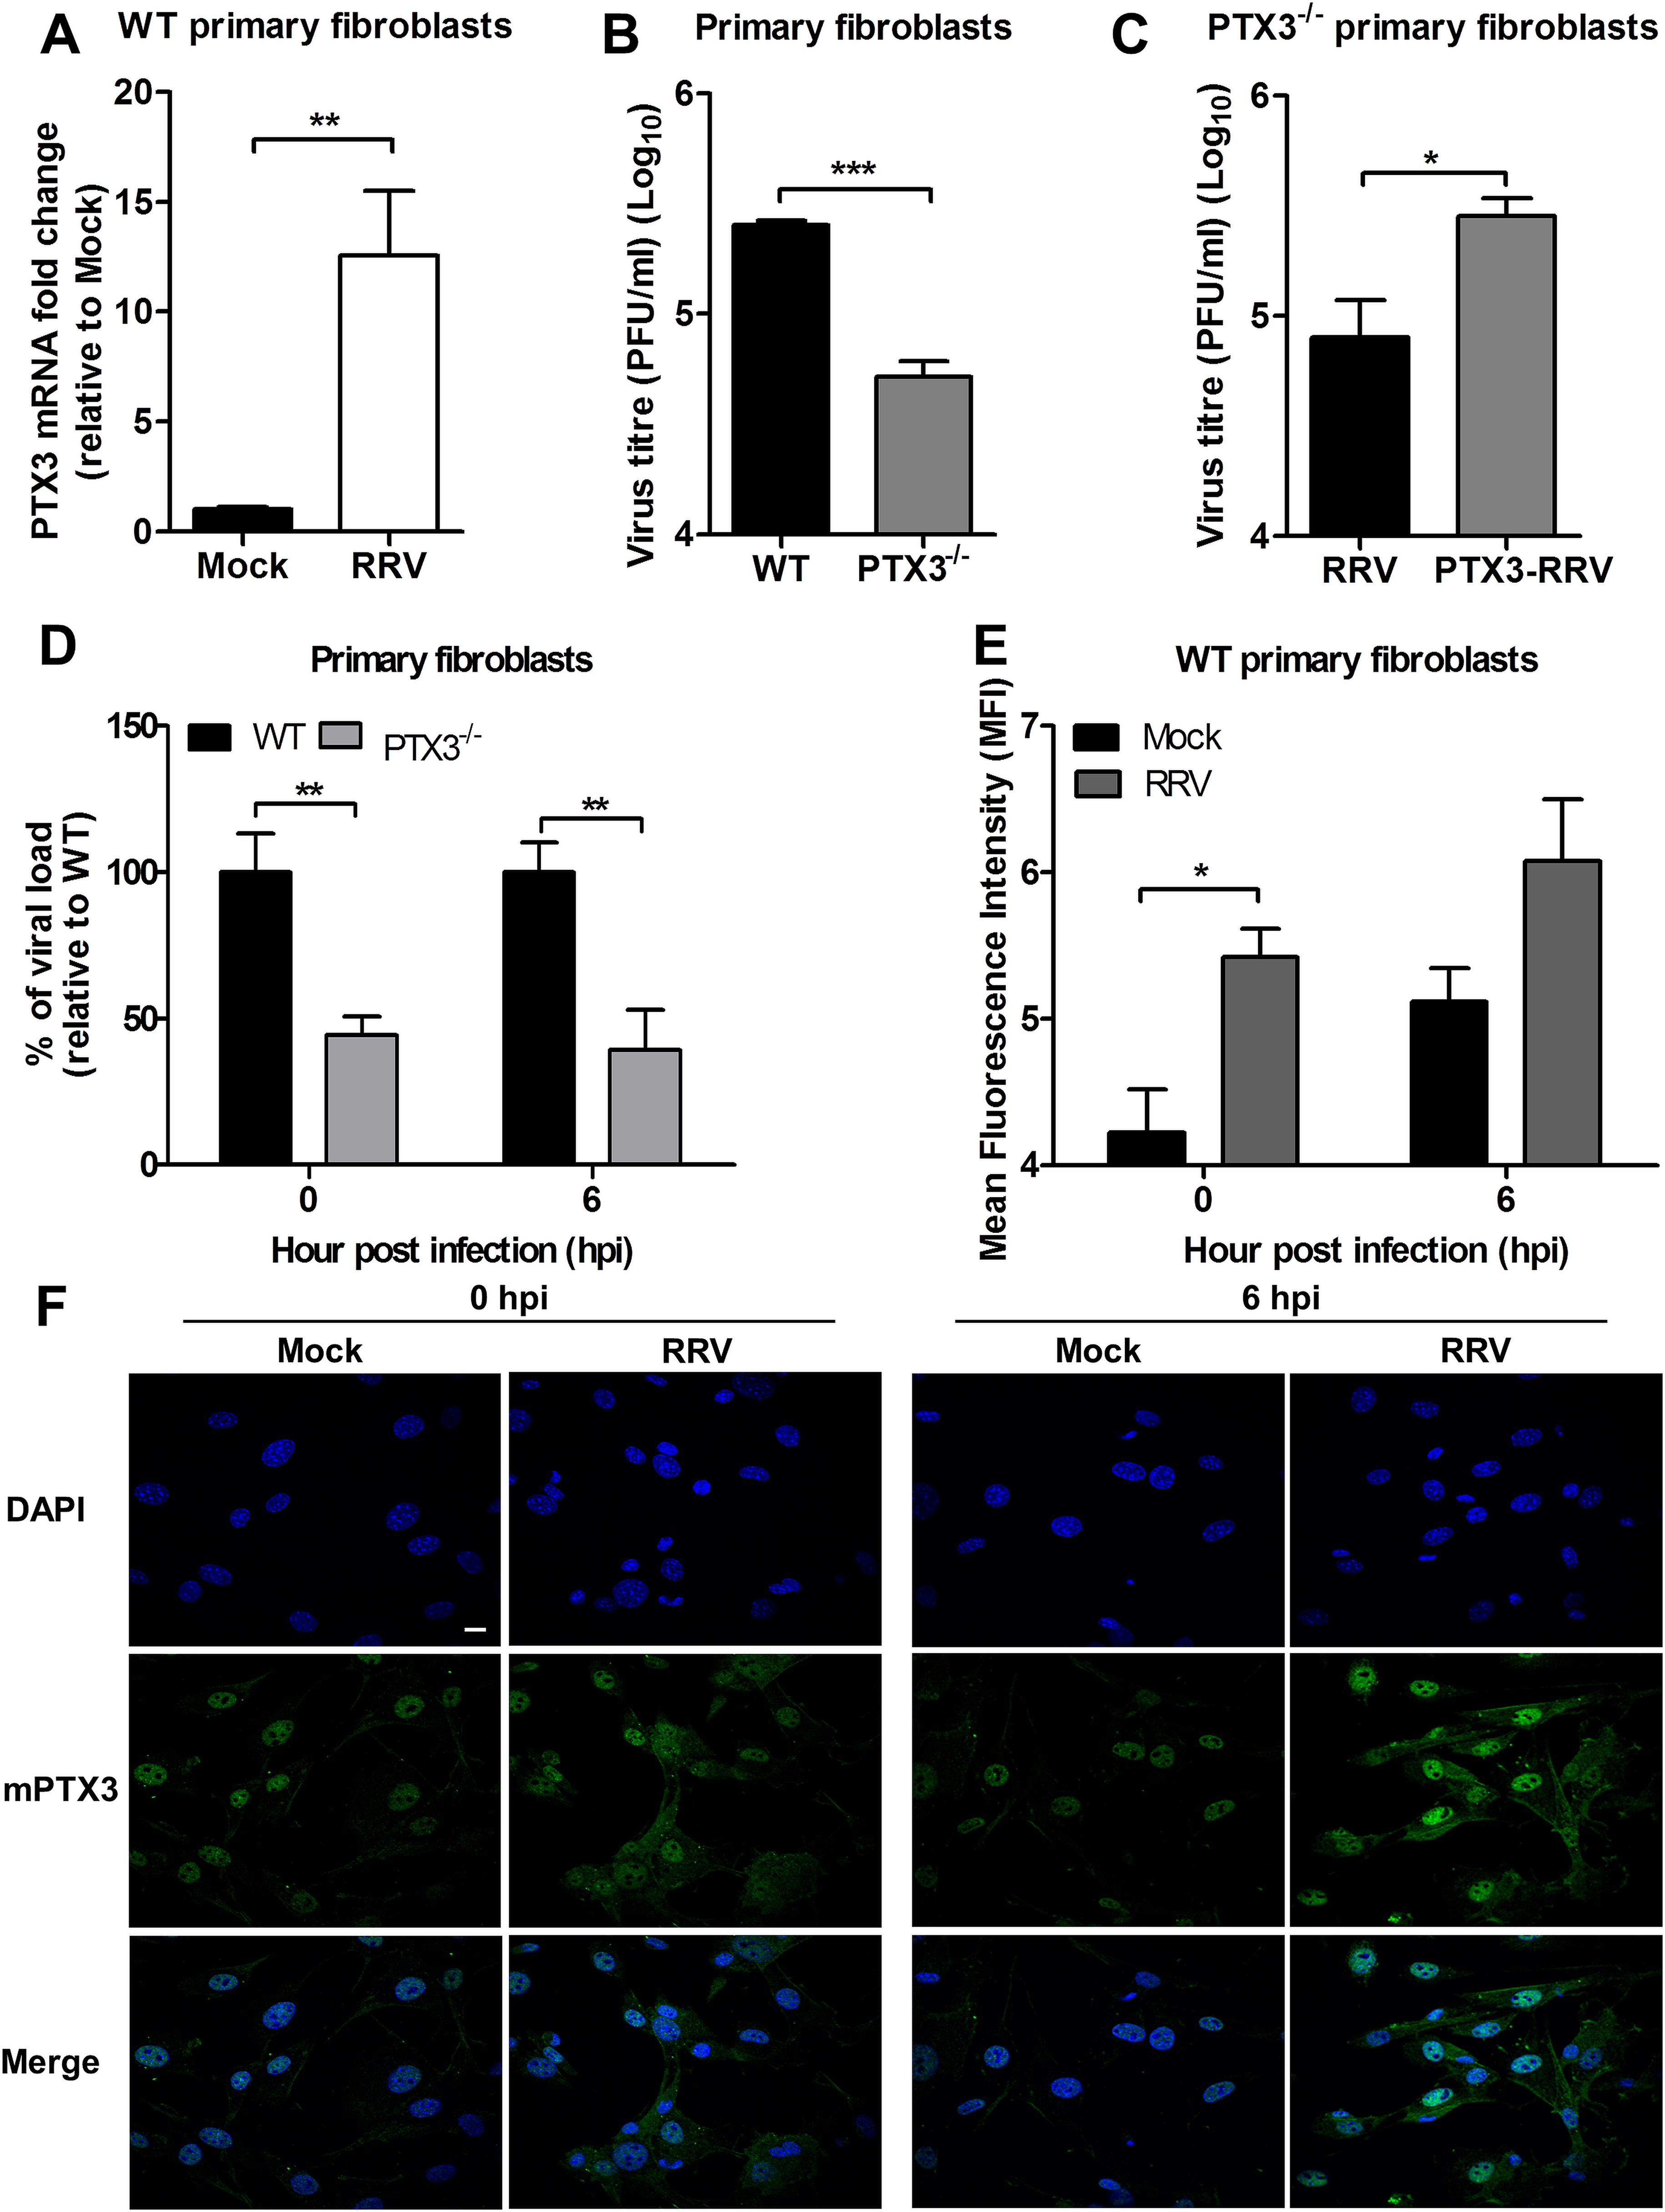 PTX3 enhances RRV replication in murine primary fibroblasts.